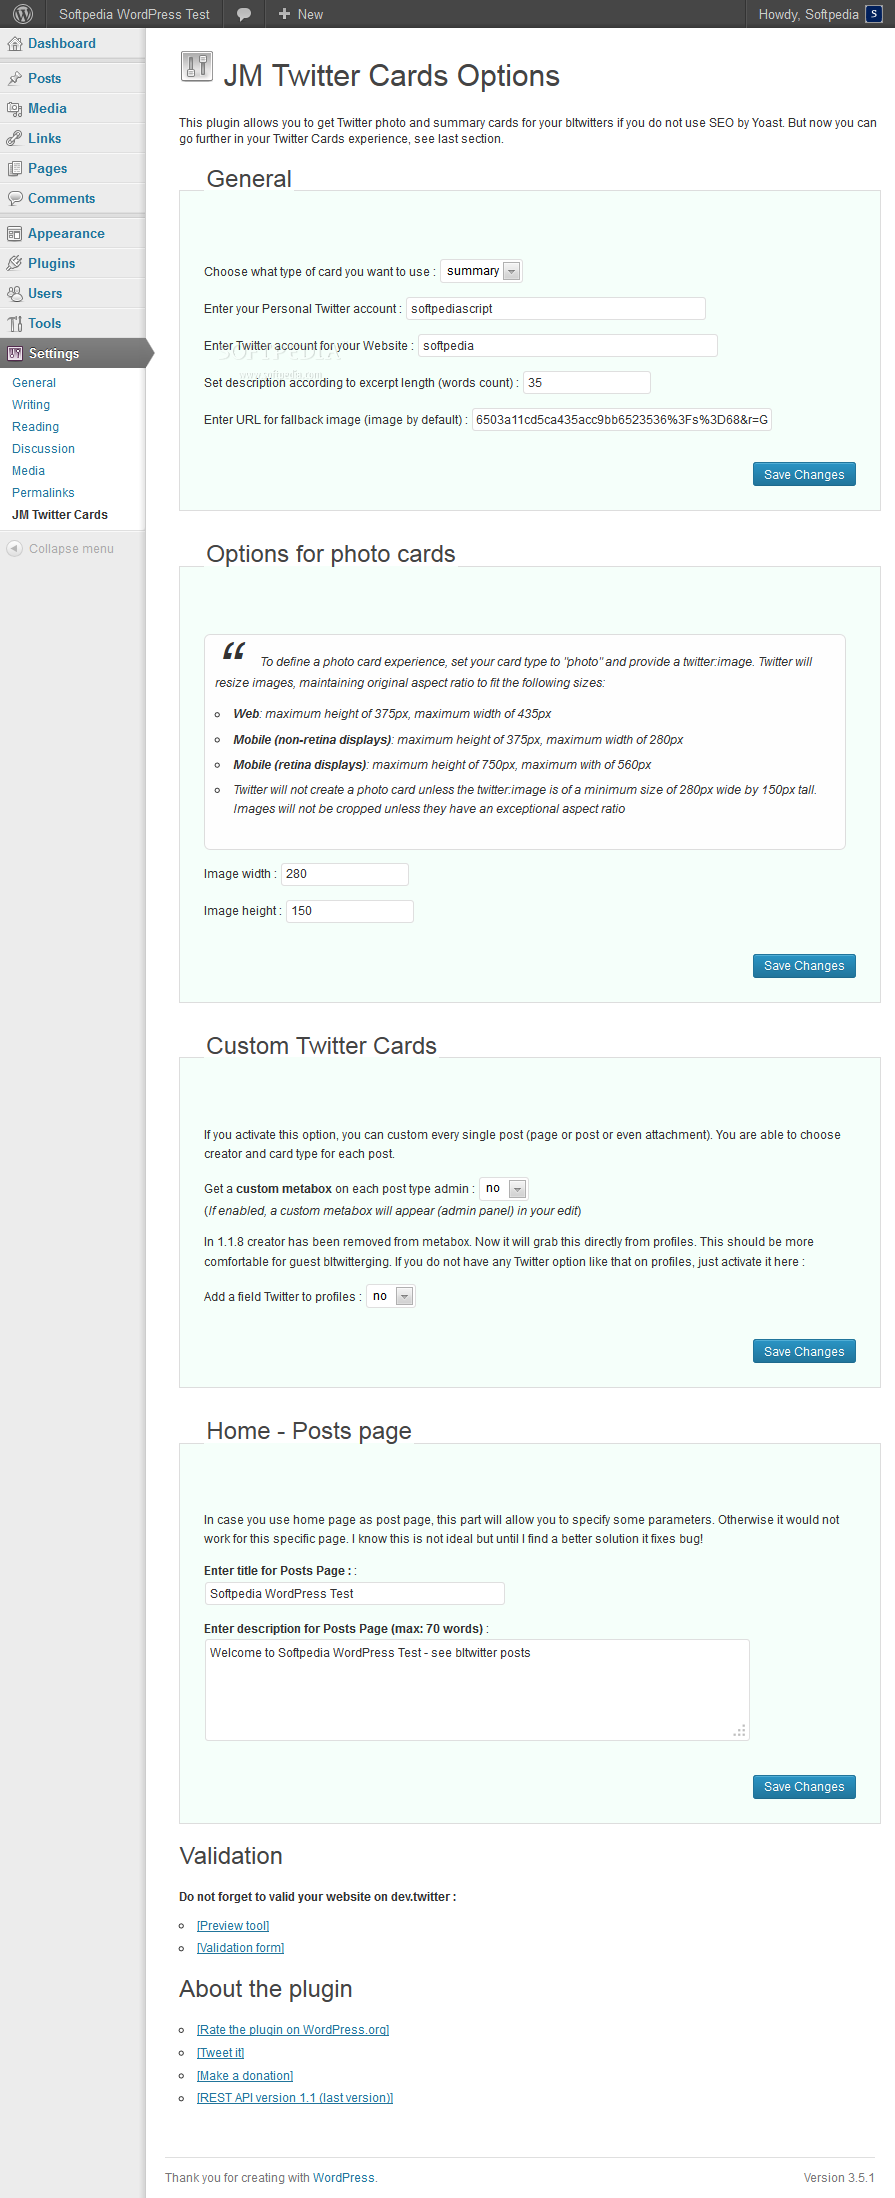 JM Twitter Cards - JM Twitter Cards allows configuring Twitter details about post authors